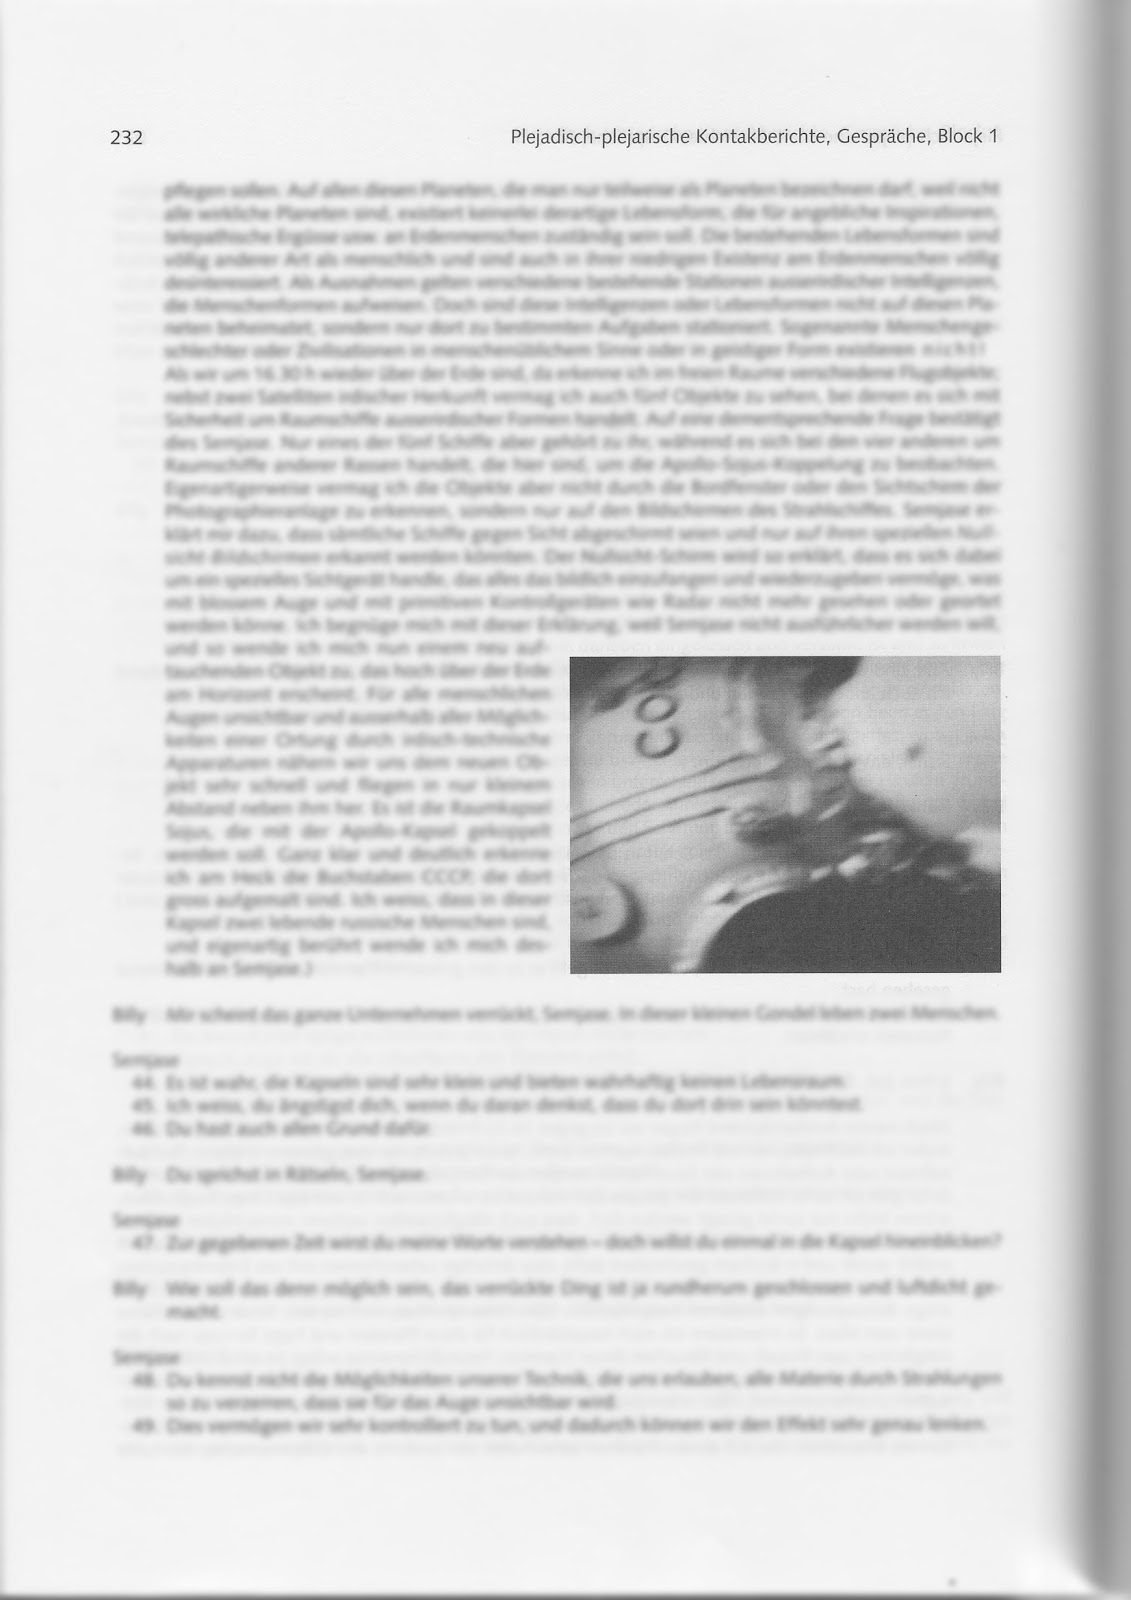 PPKB 01 - pg 232 - CR 031 - Blurred